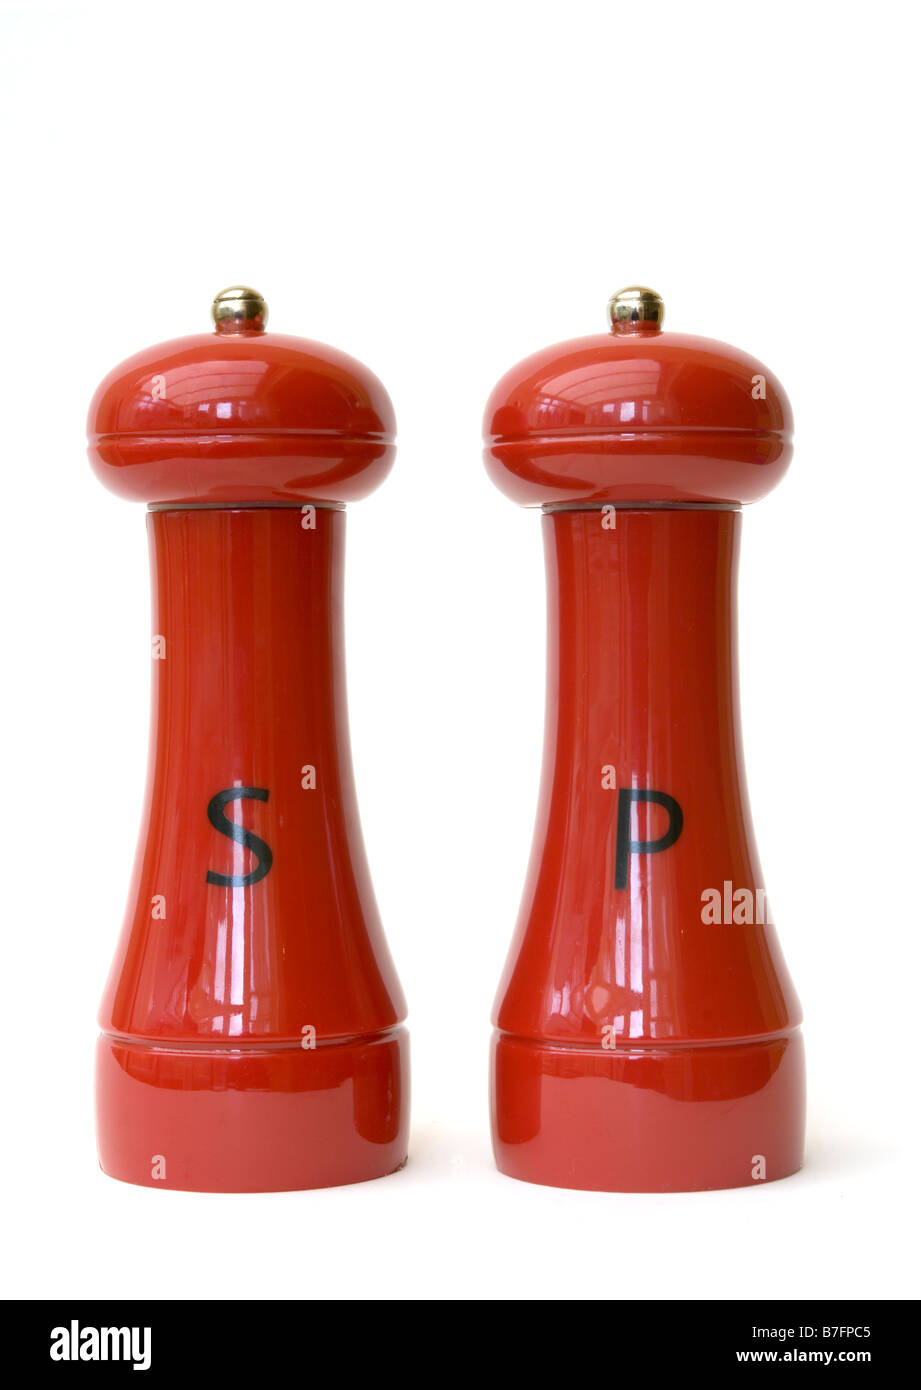 Red Salt and Pepper Pots - Stock Image